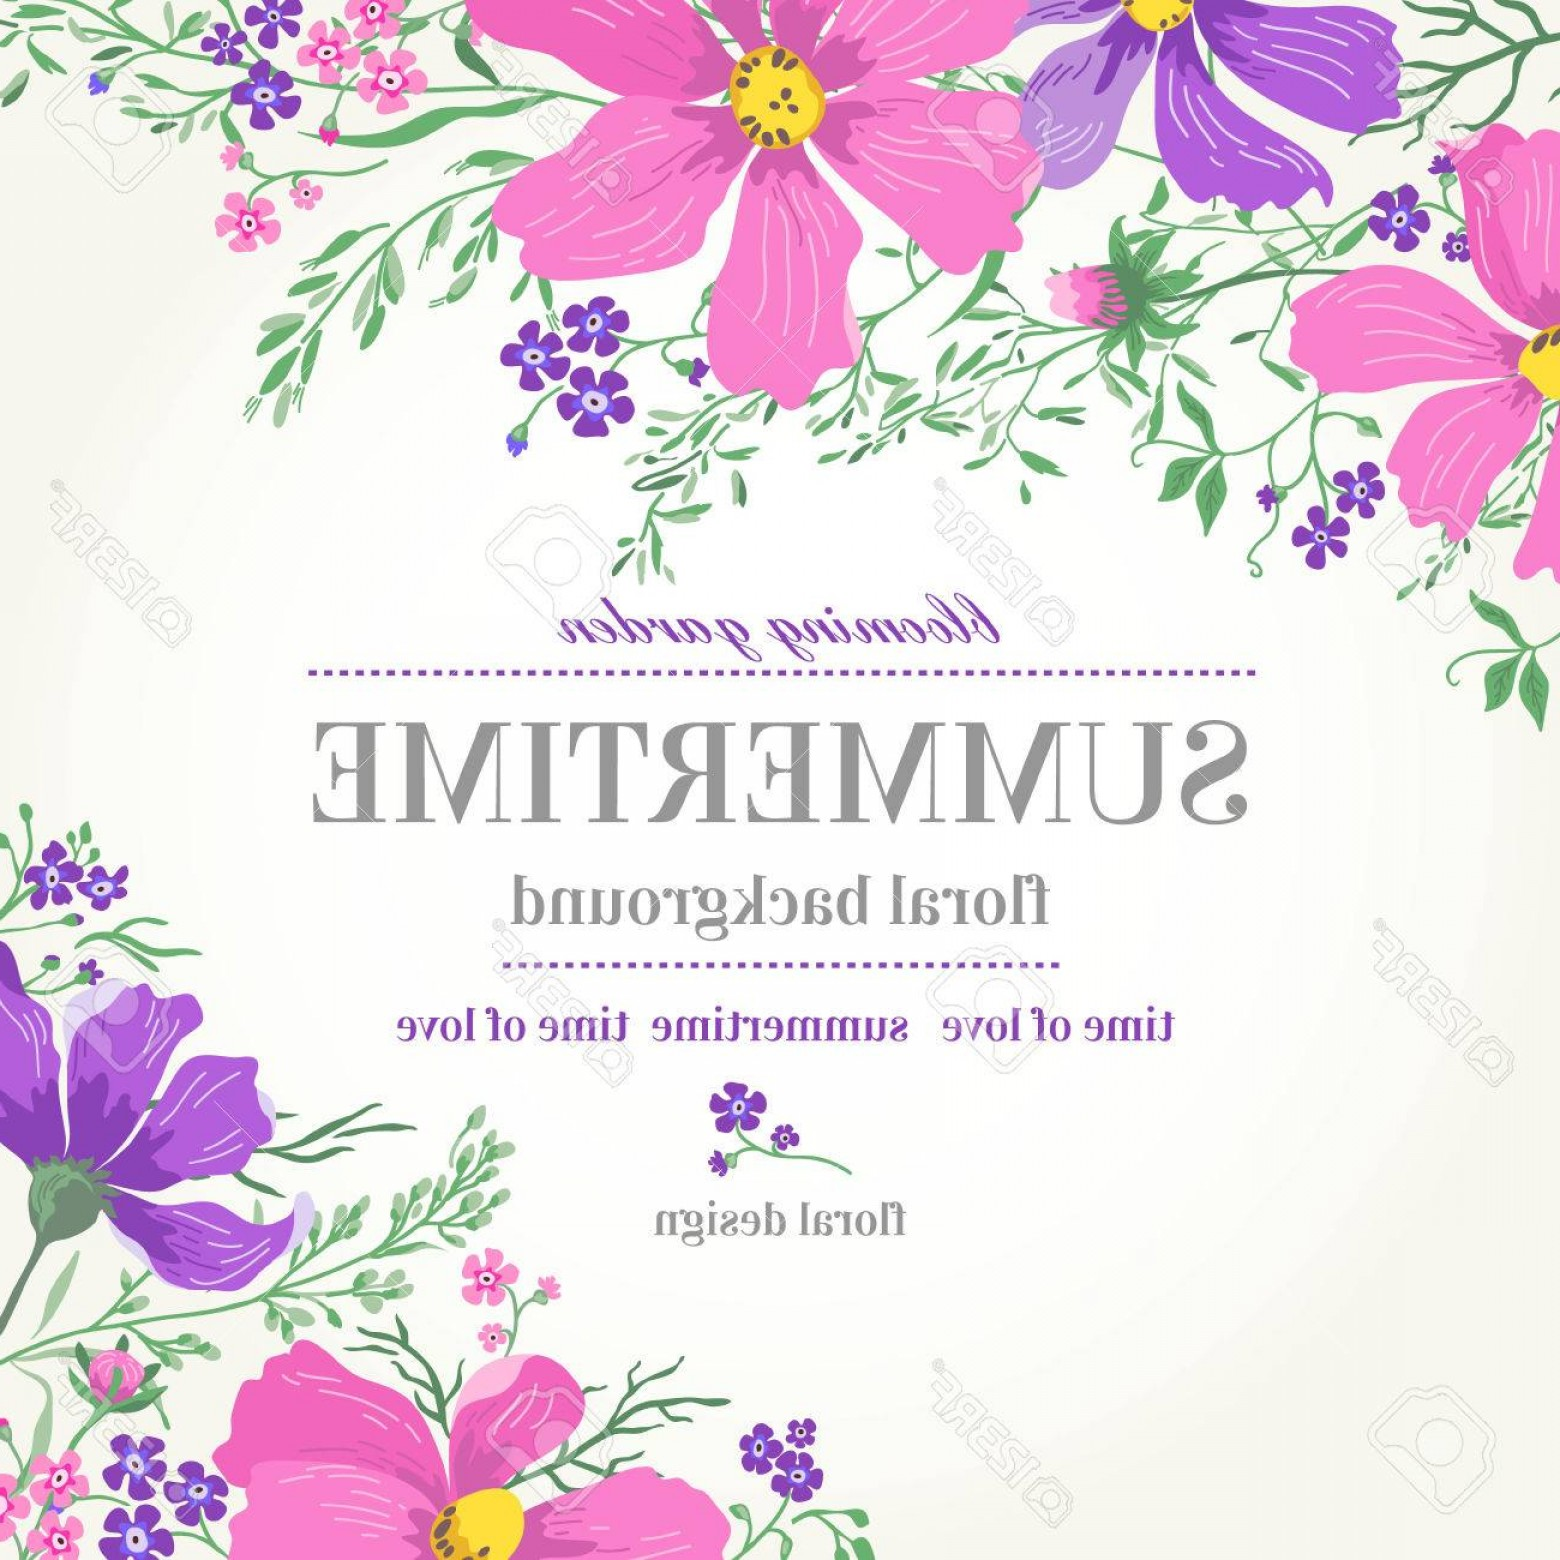 Lilac Wedding Vectors: Photostock Vector Vector Wedding Invitation With Pink And Purple Flowers On A White Background